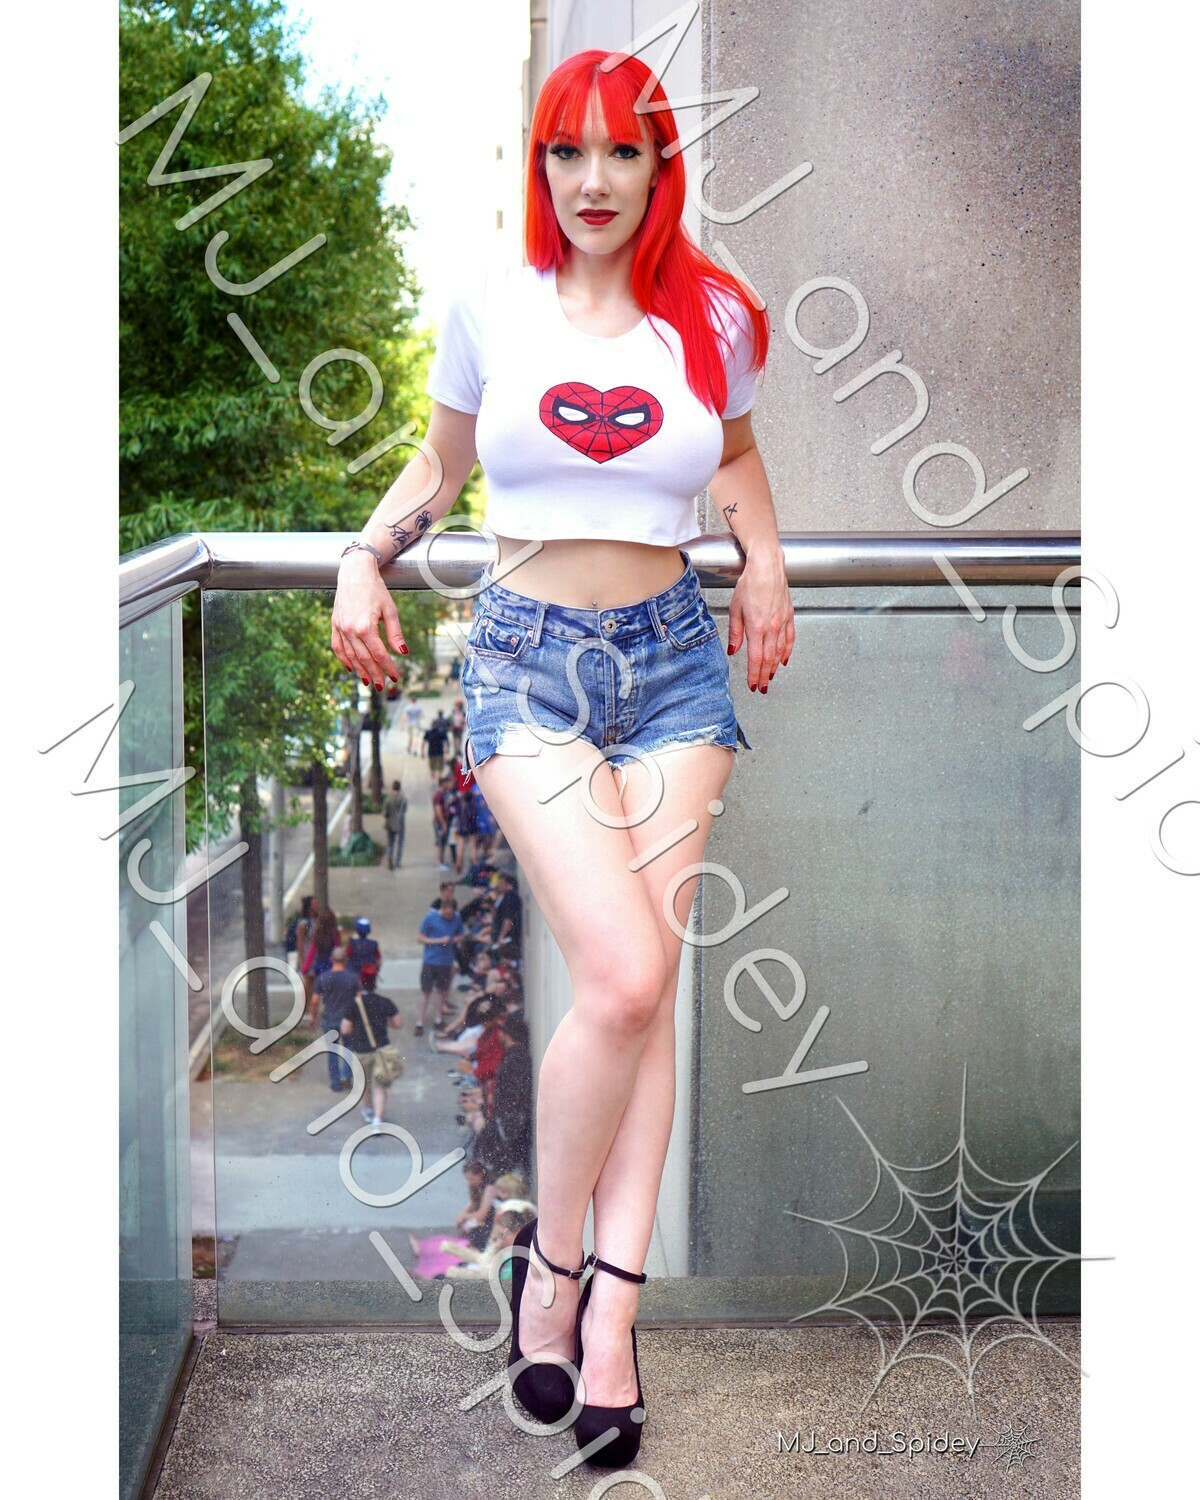 Marvel - Spider-Man - Mary Jane Watson - Classic No. 5 - Digital Cosplay Image (@MJ_and_Spidey, MJ and Spidey, Comics)